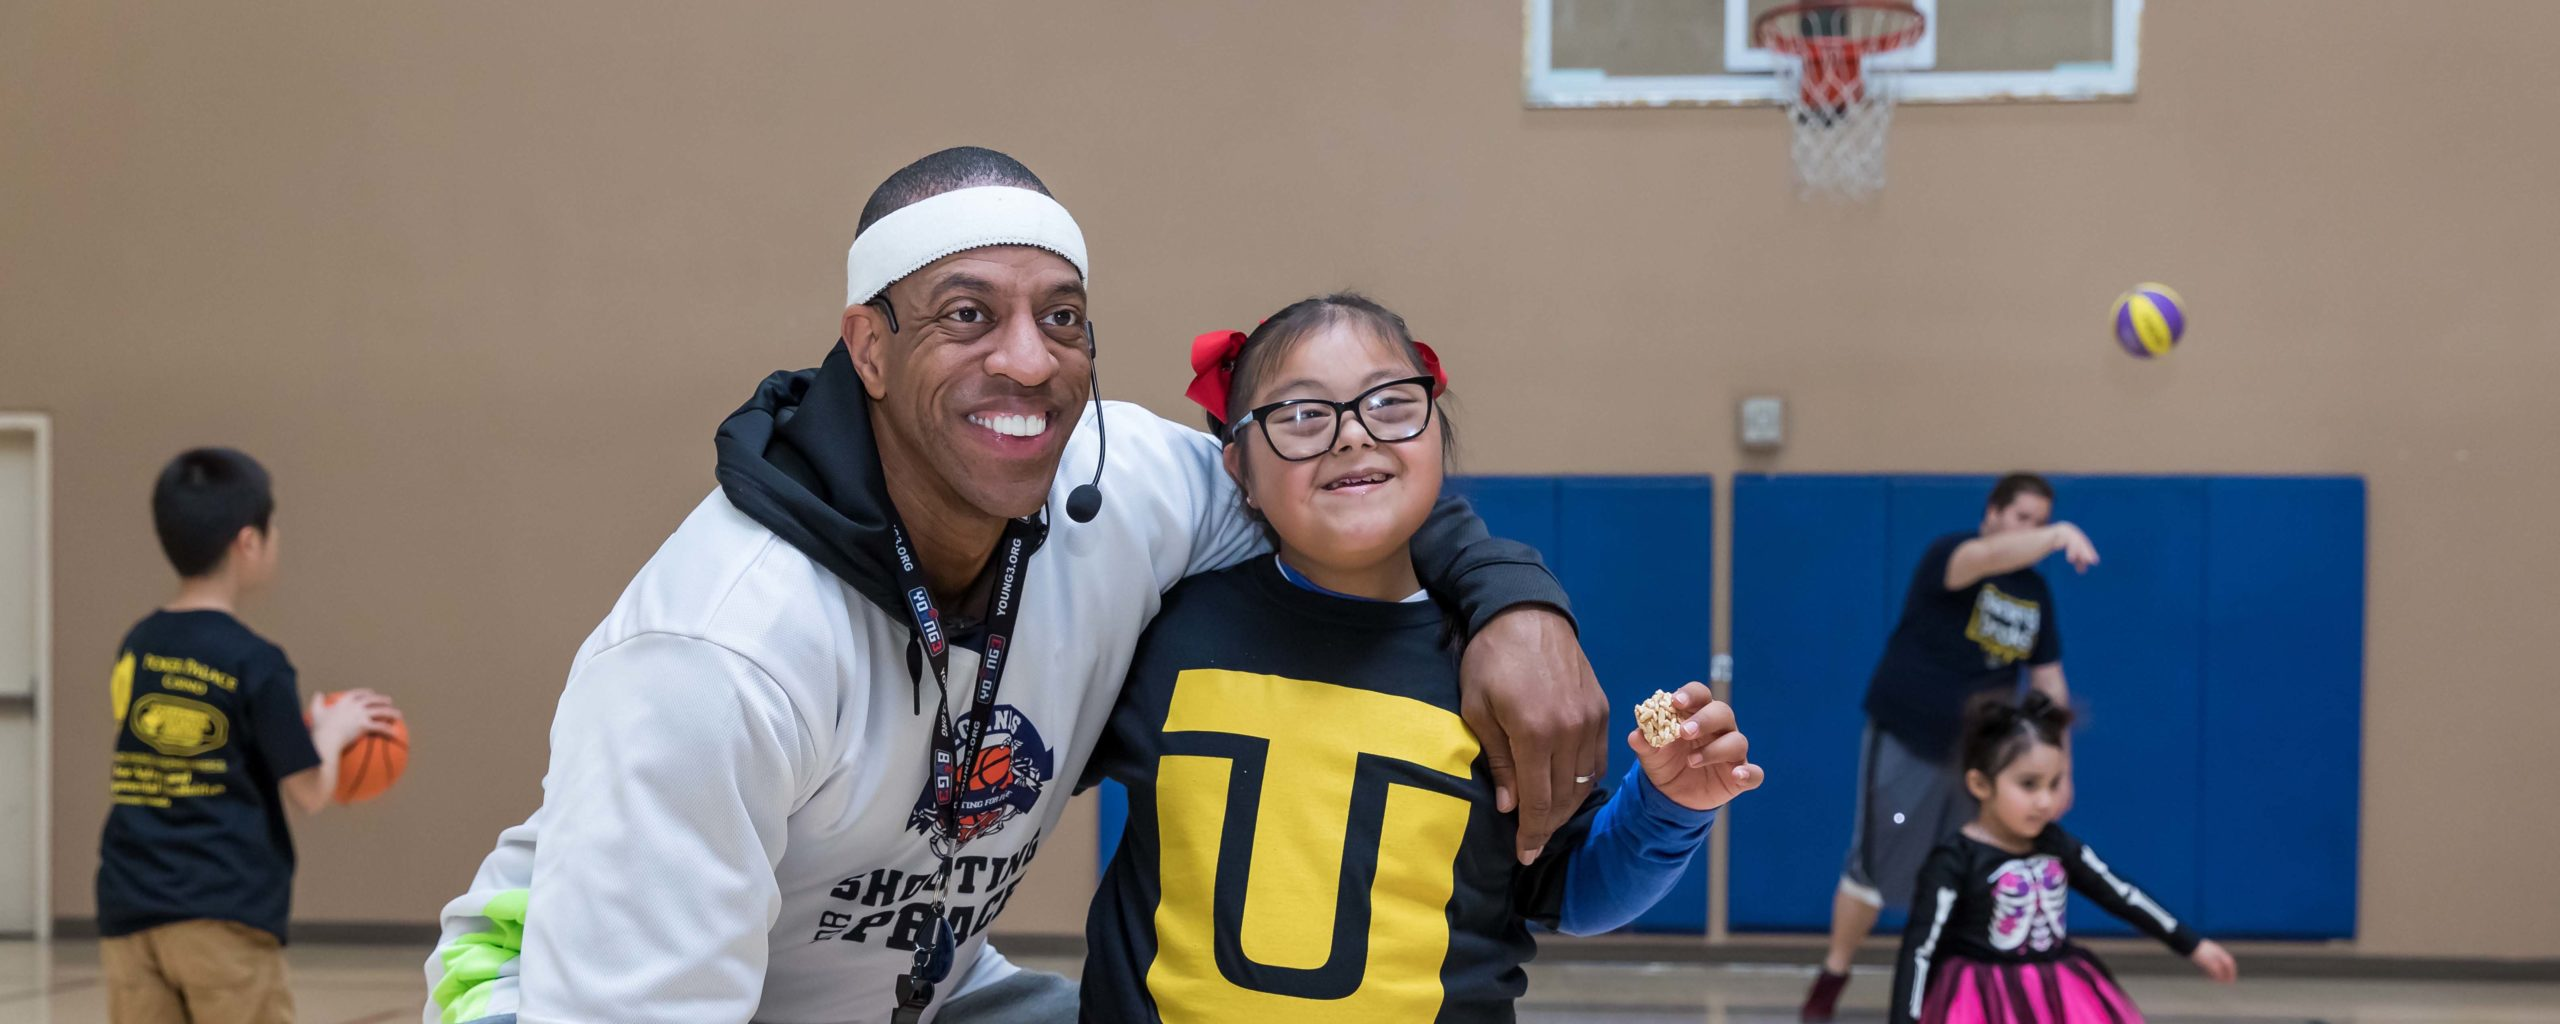 Touro Holds 2020 Basketball Clinic for Children with Autism and Developmental Disabilities